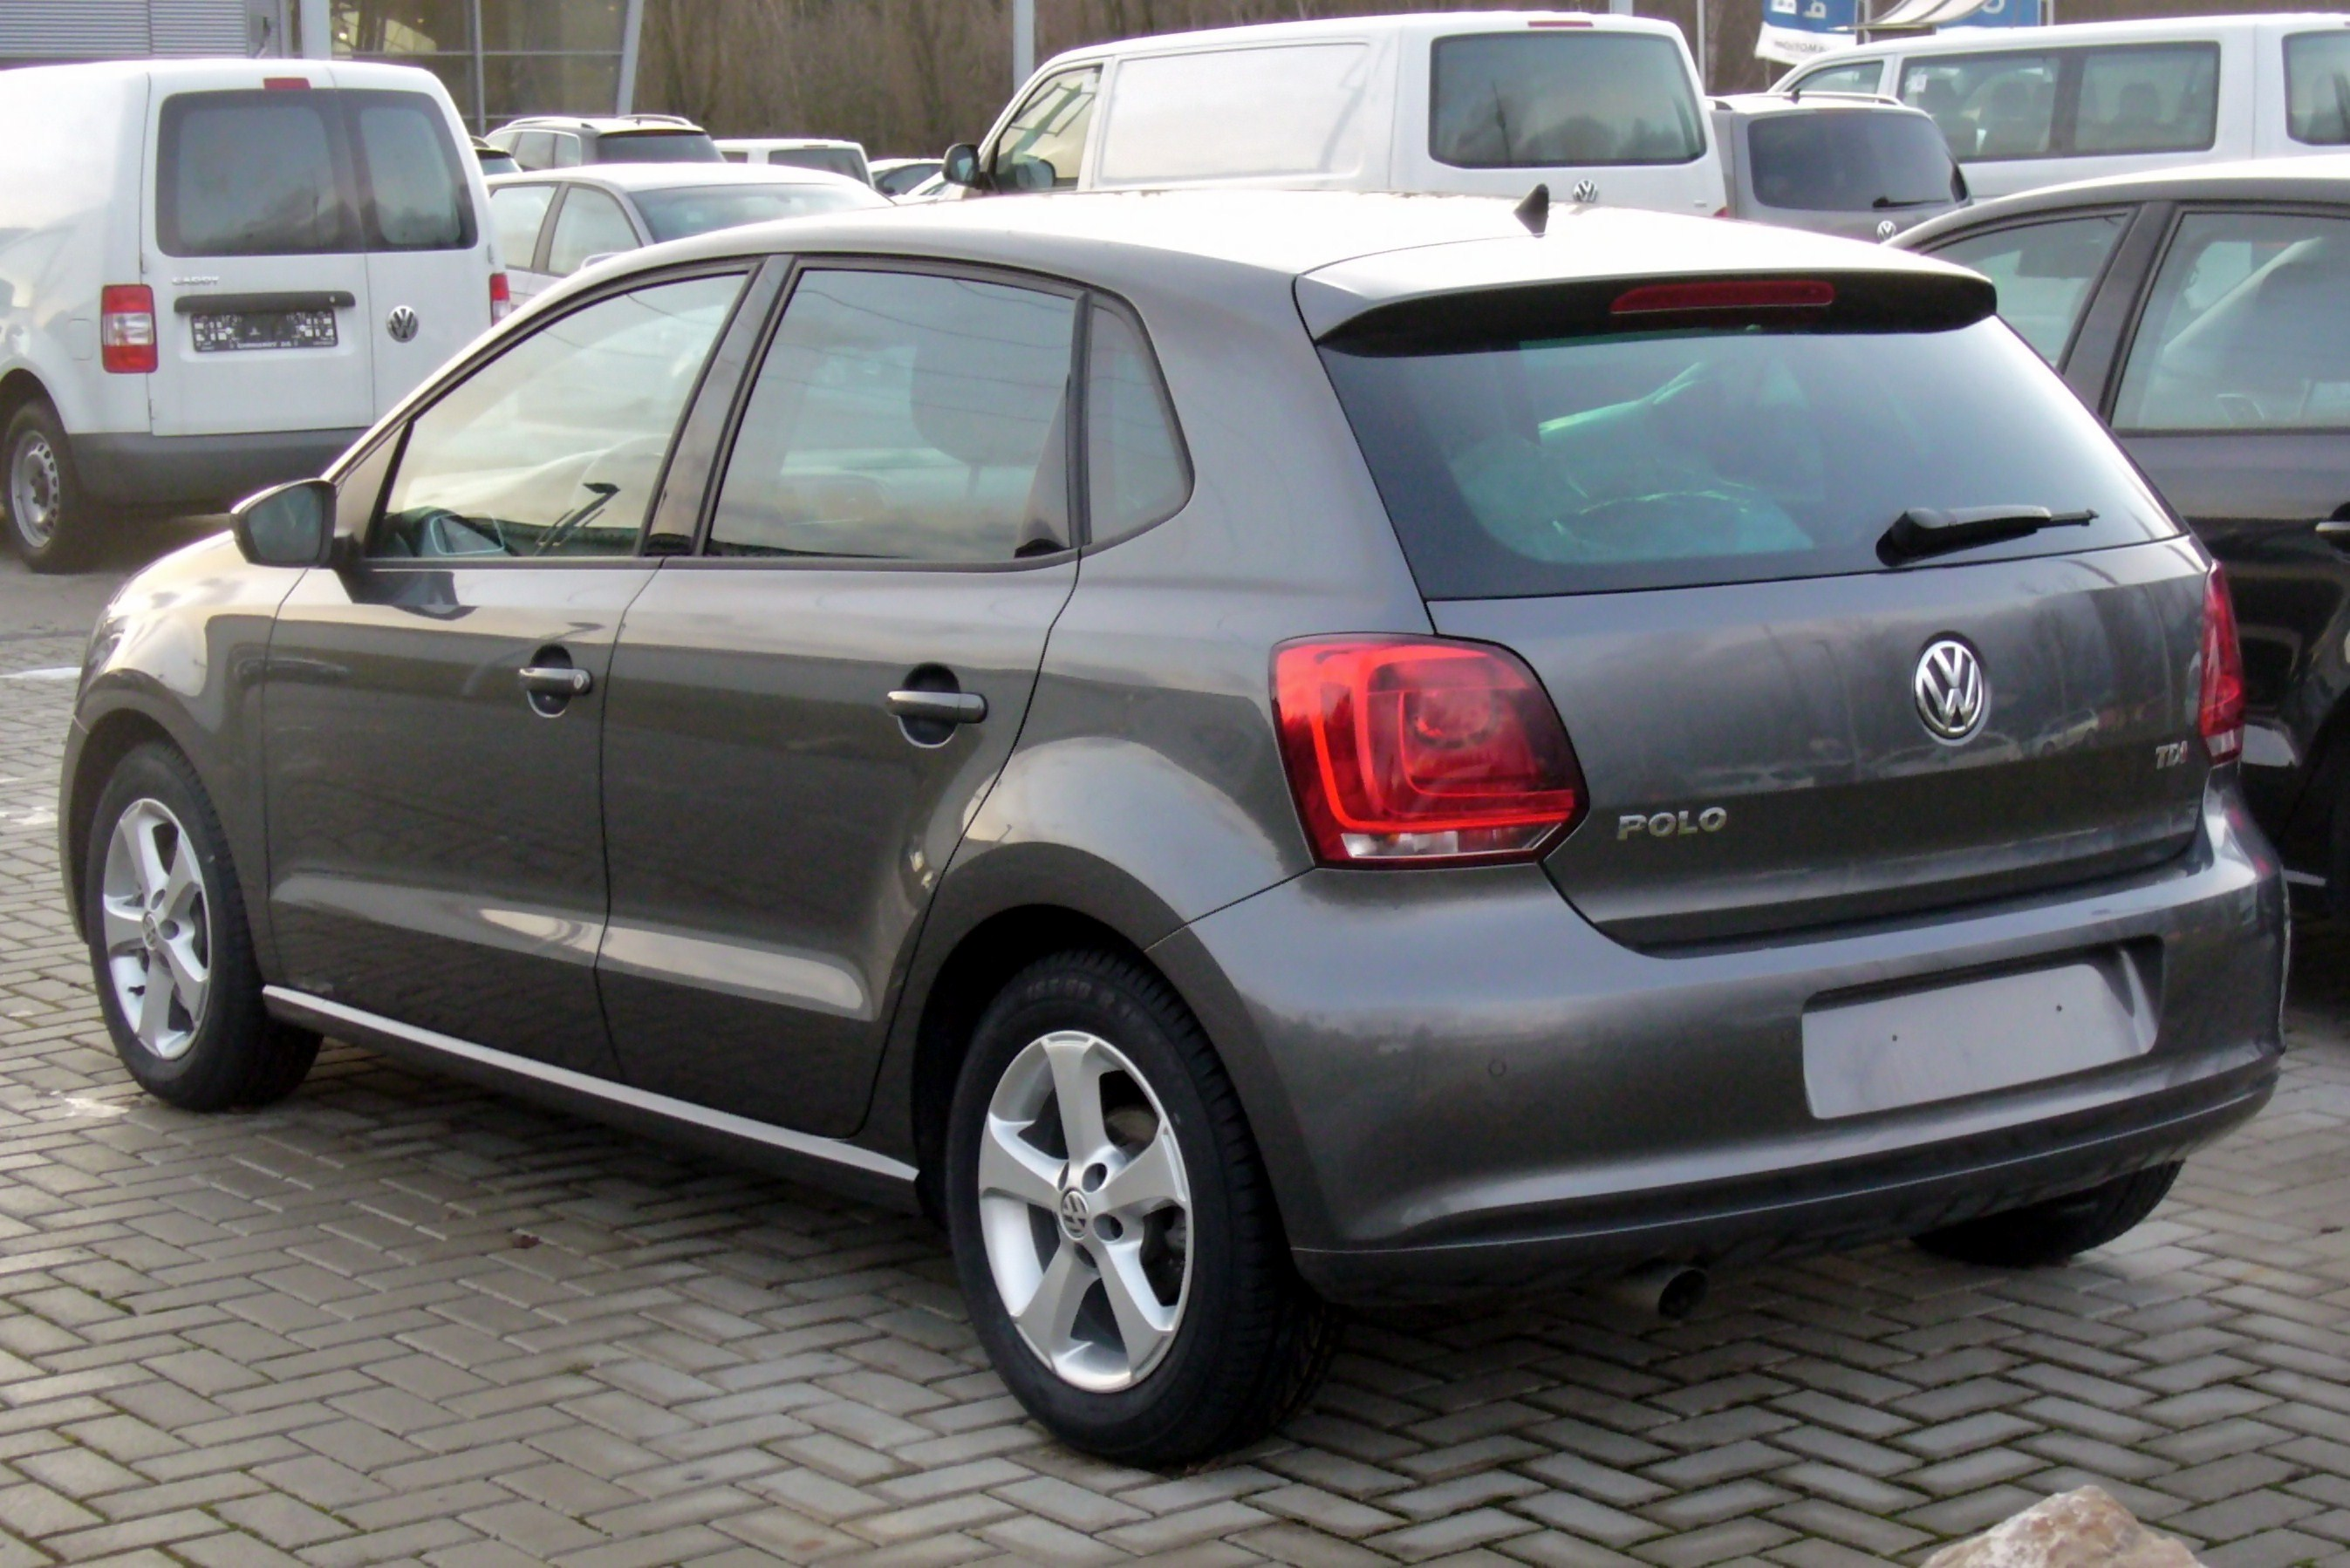 Volkswagen Polo 1.6 2011 photo - 9